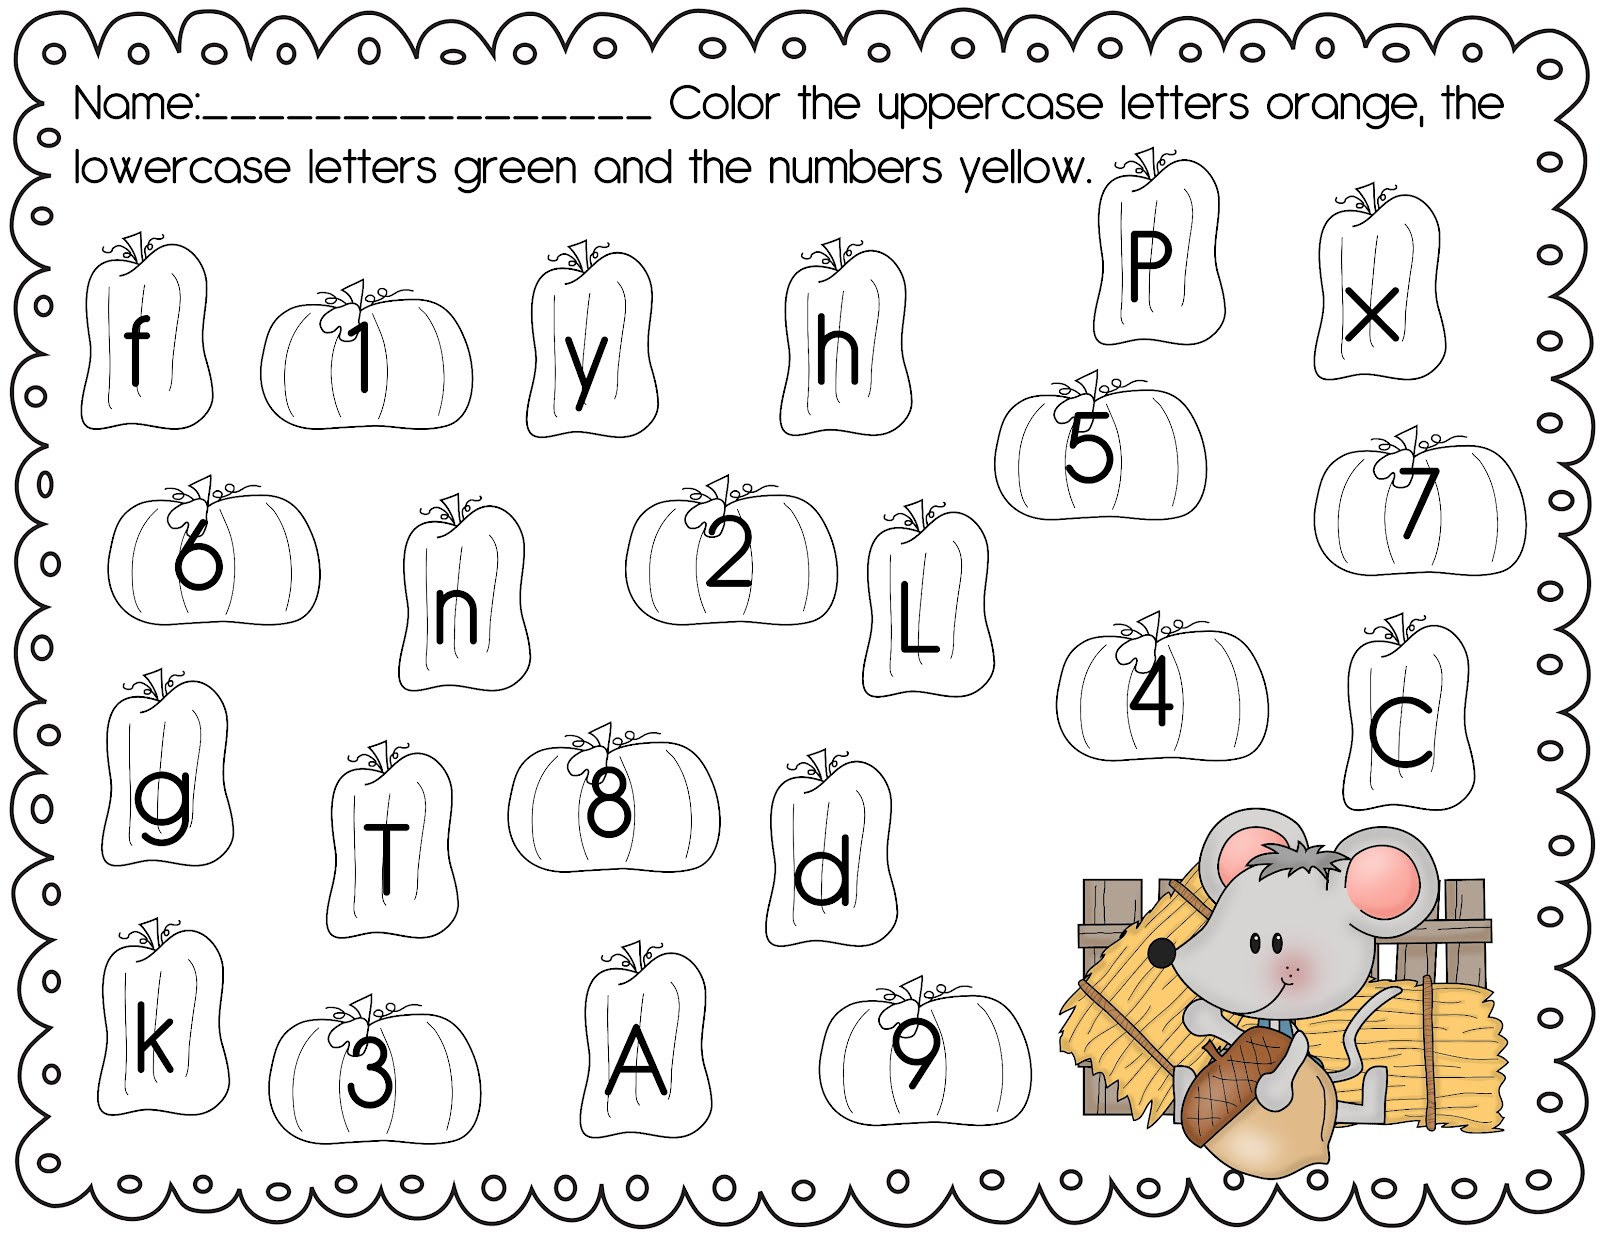 Worksheets Abc Worksheets For Pre-k the crazy pre k classroom fall freebie themed abc and 123 worksheets deanna jump reaches 1000000 00 on tpt